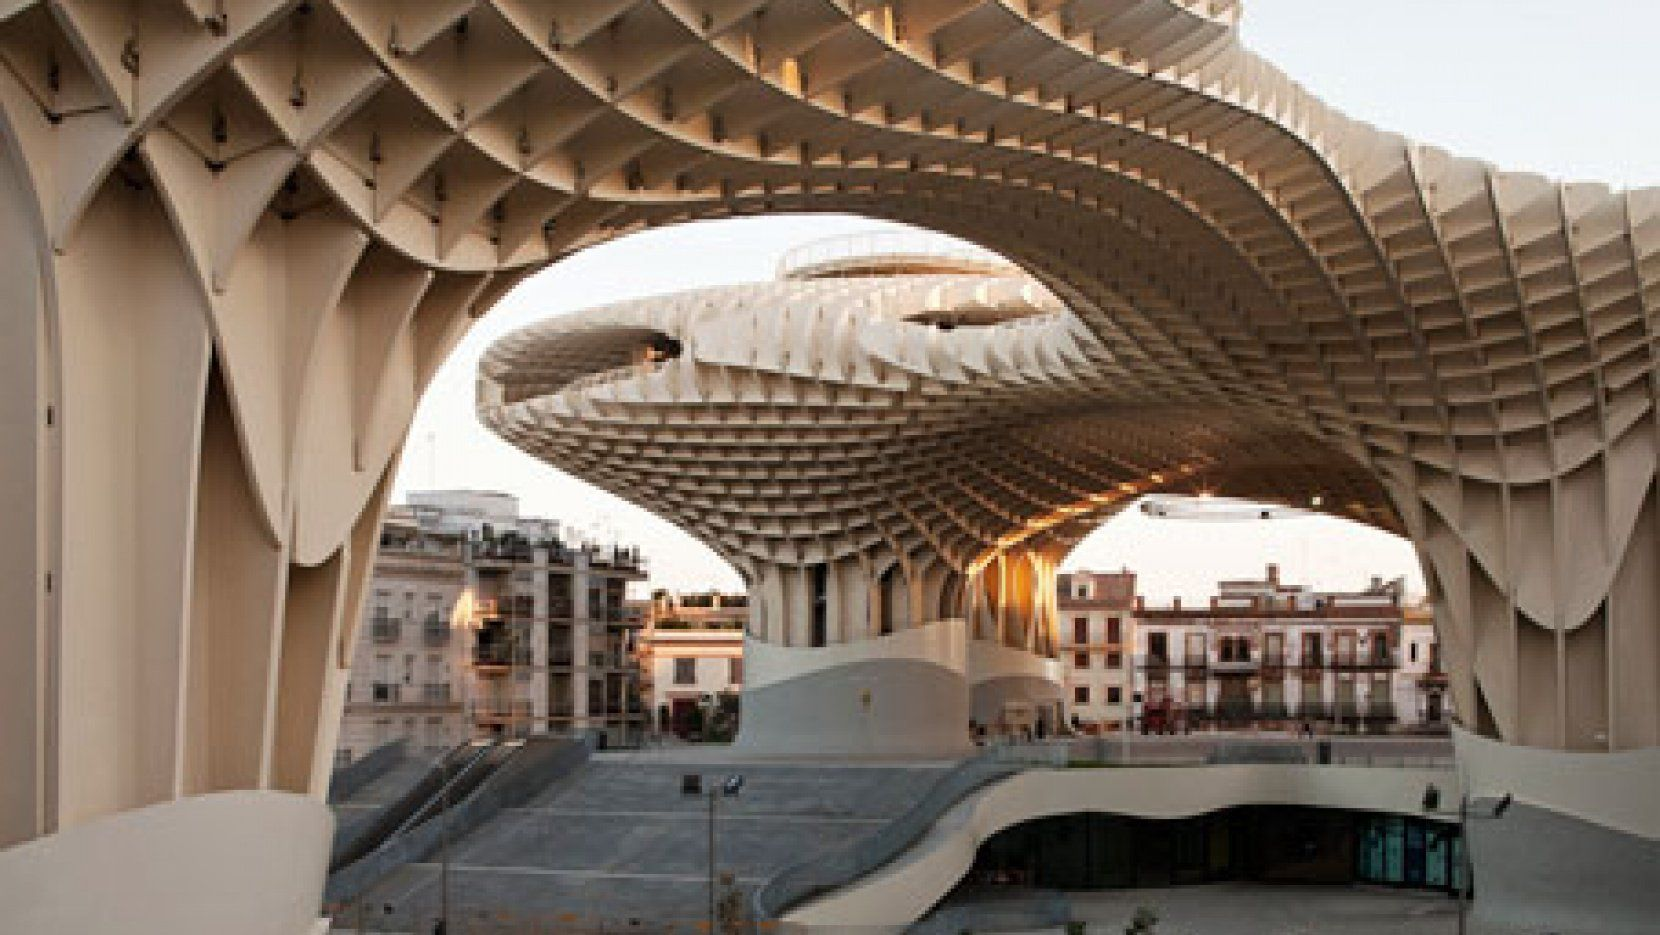 Metropol Parasol The World S Largest Wooden Structure